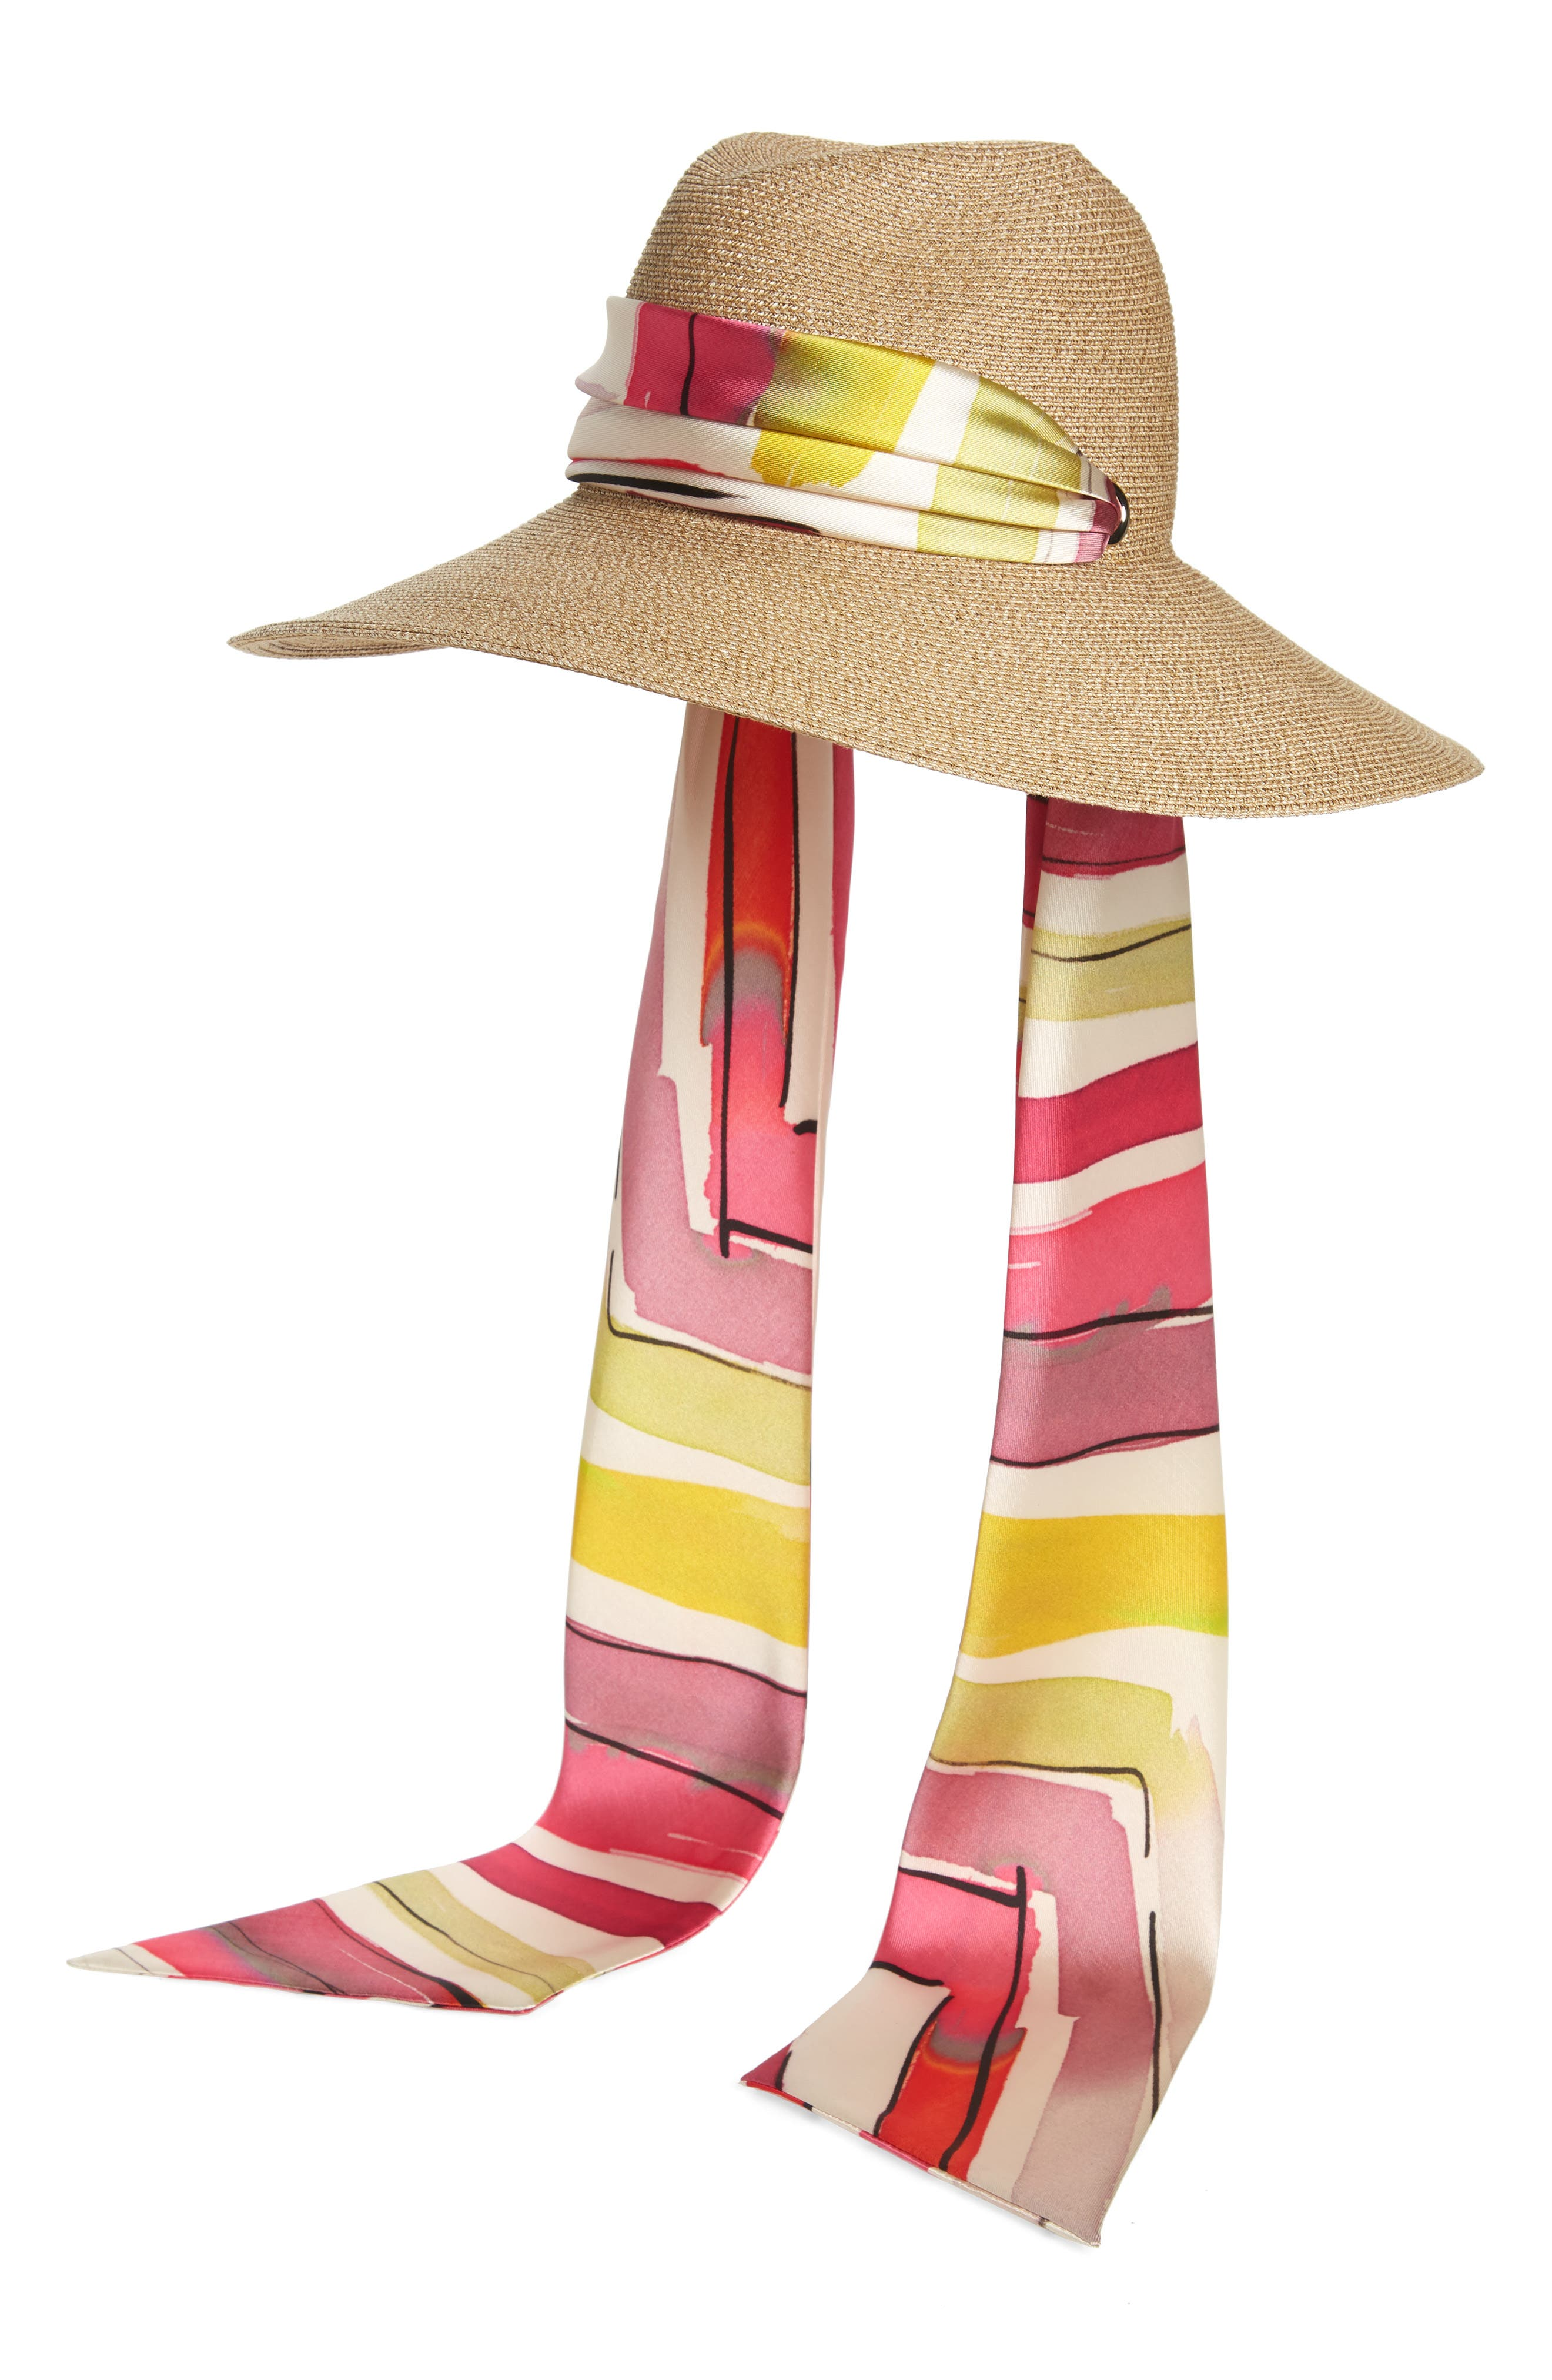 EUGENIA KIM, Cassidy Packable Hat, Main thumbnail 1, color, 200